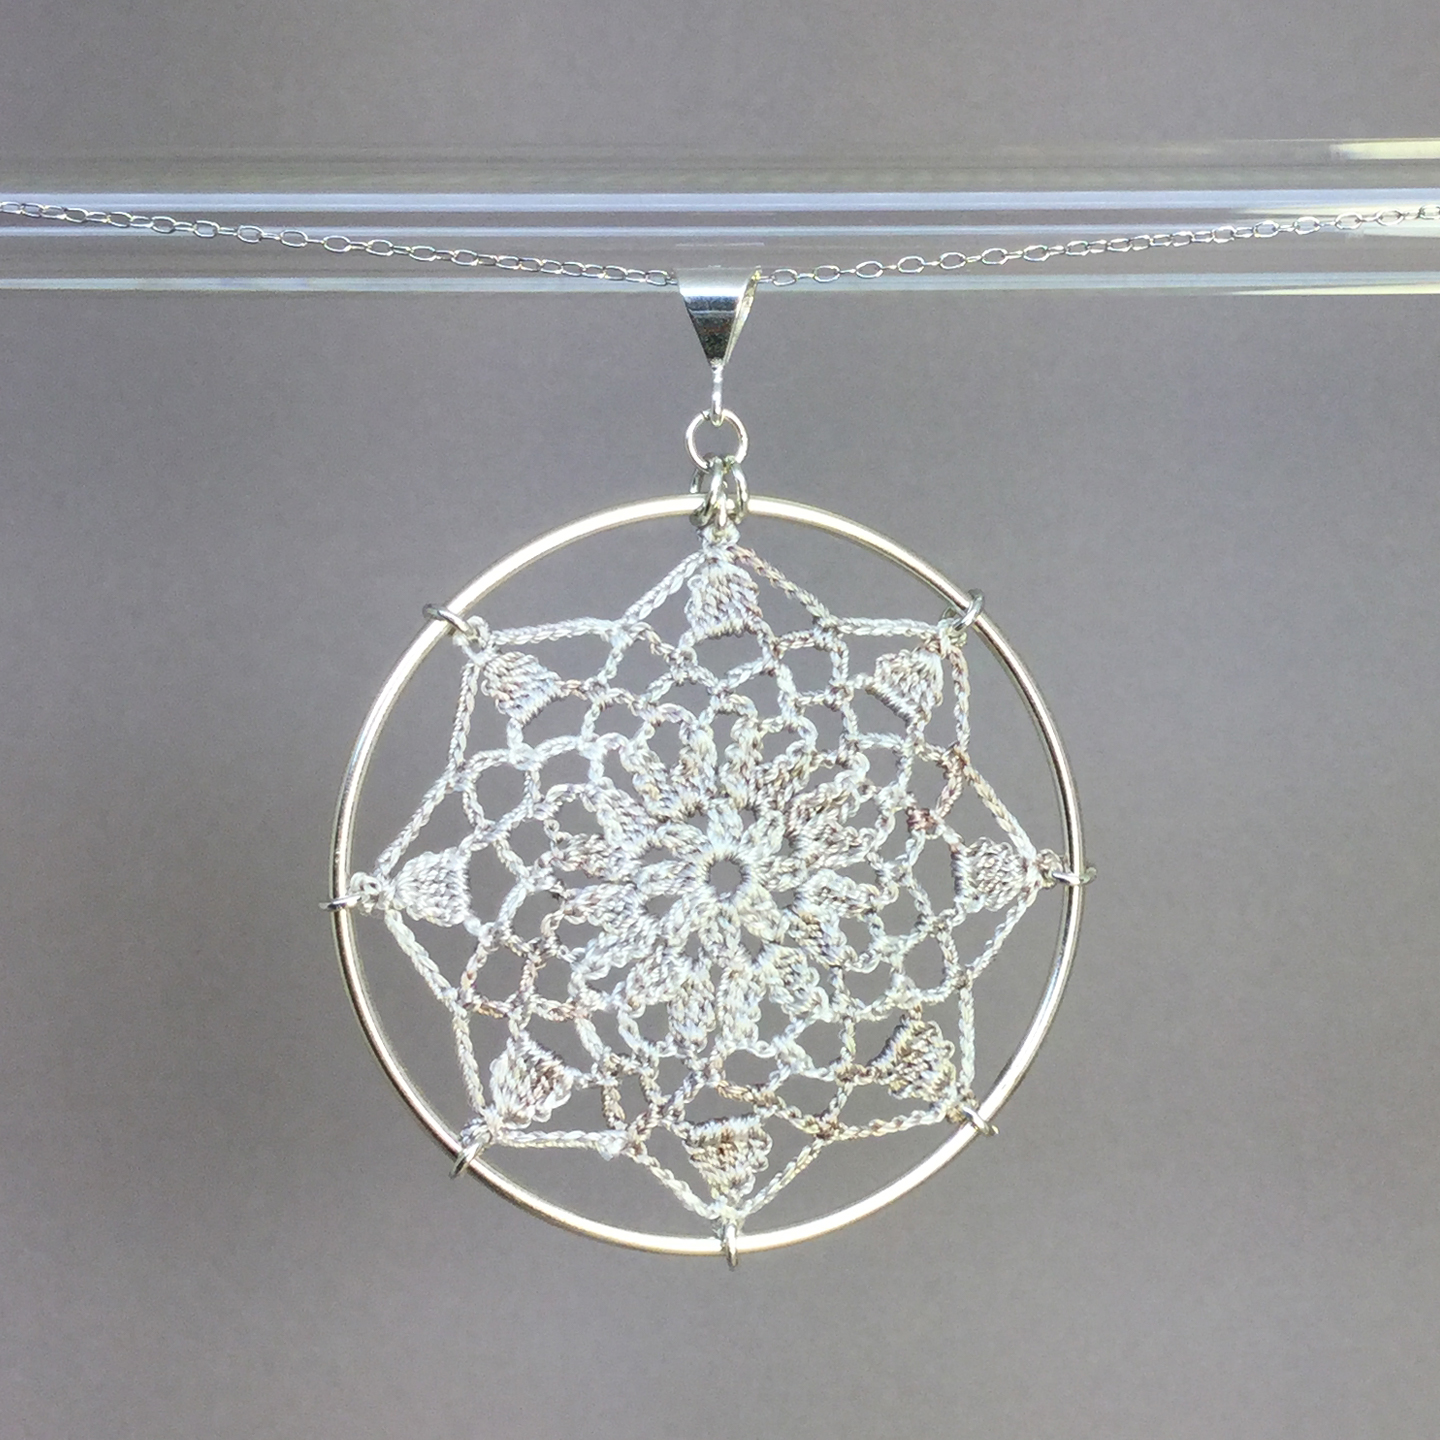 Mandala necklace, silver, pearly thread